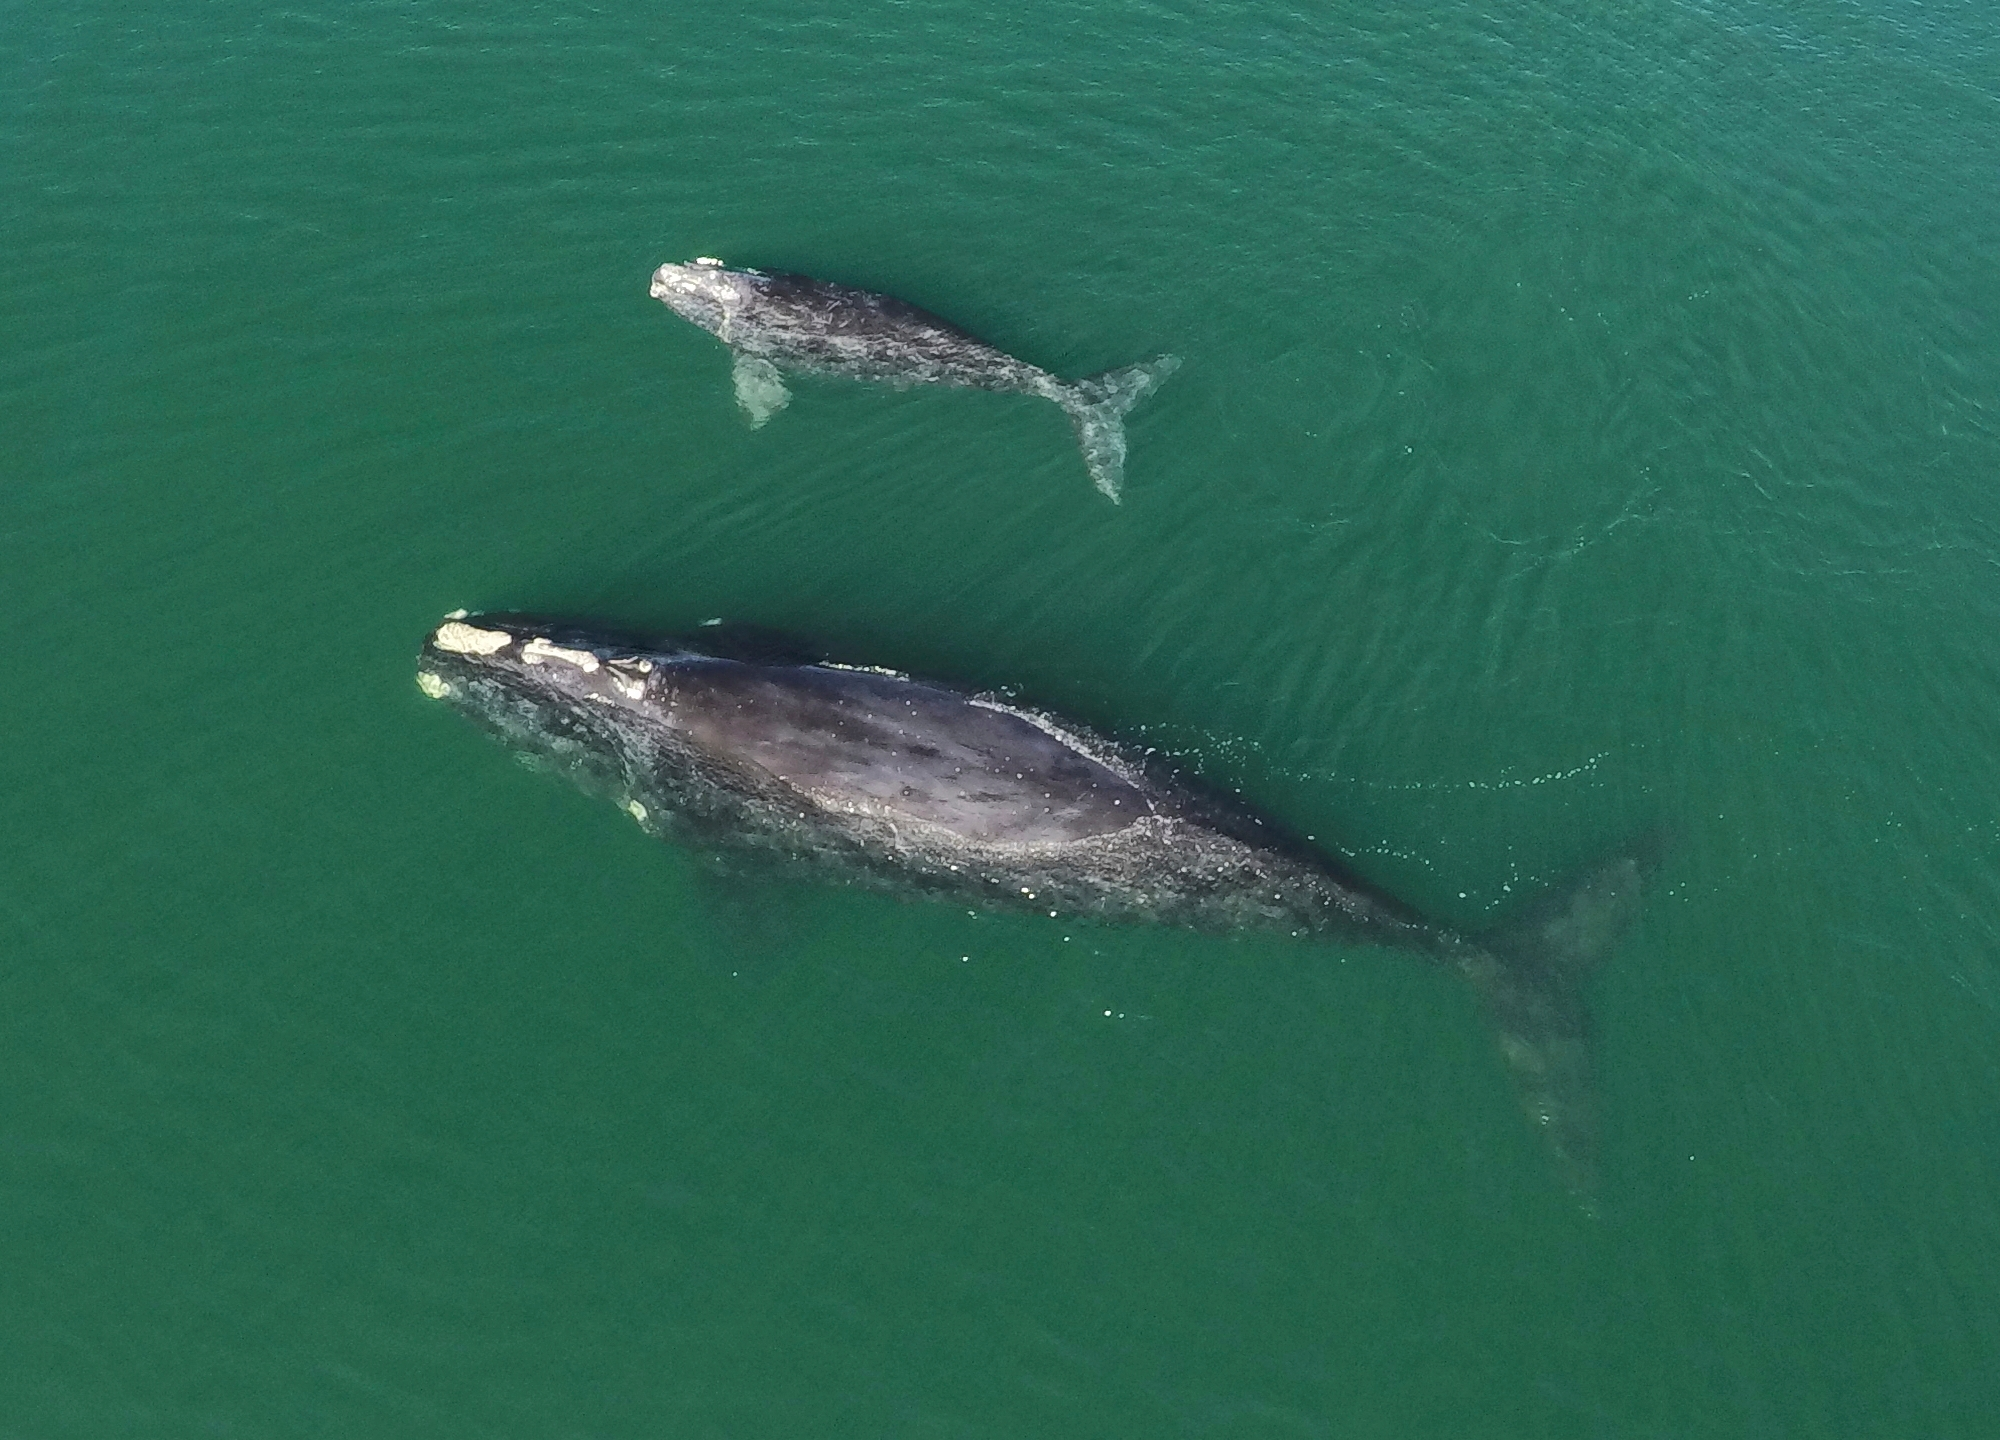 This Jan. 19, 2021 photo provided by the Georgia Department of Natural Resources shows a North Atlantic right whale mother and calf in waters near Wassaw Island, Ga. Scientists recorded 17 newborn right whale calves during the critically endangered species' winter calving season off the Atlantic coast of the southeastern U.S. (Georgia Department of Natural Resources/NOAA Permit #20556 via AP)